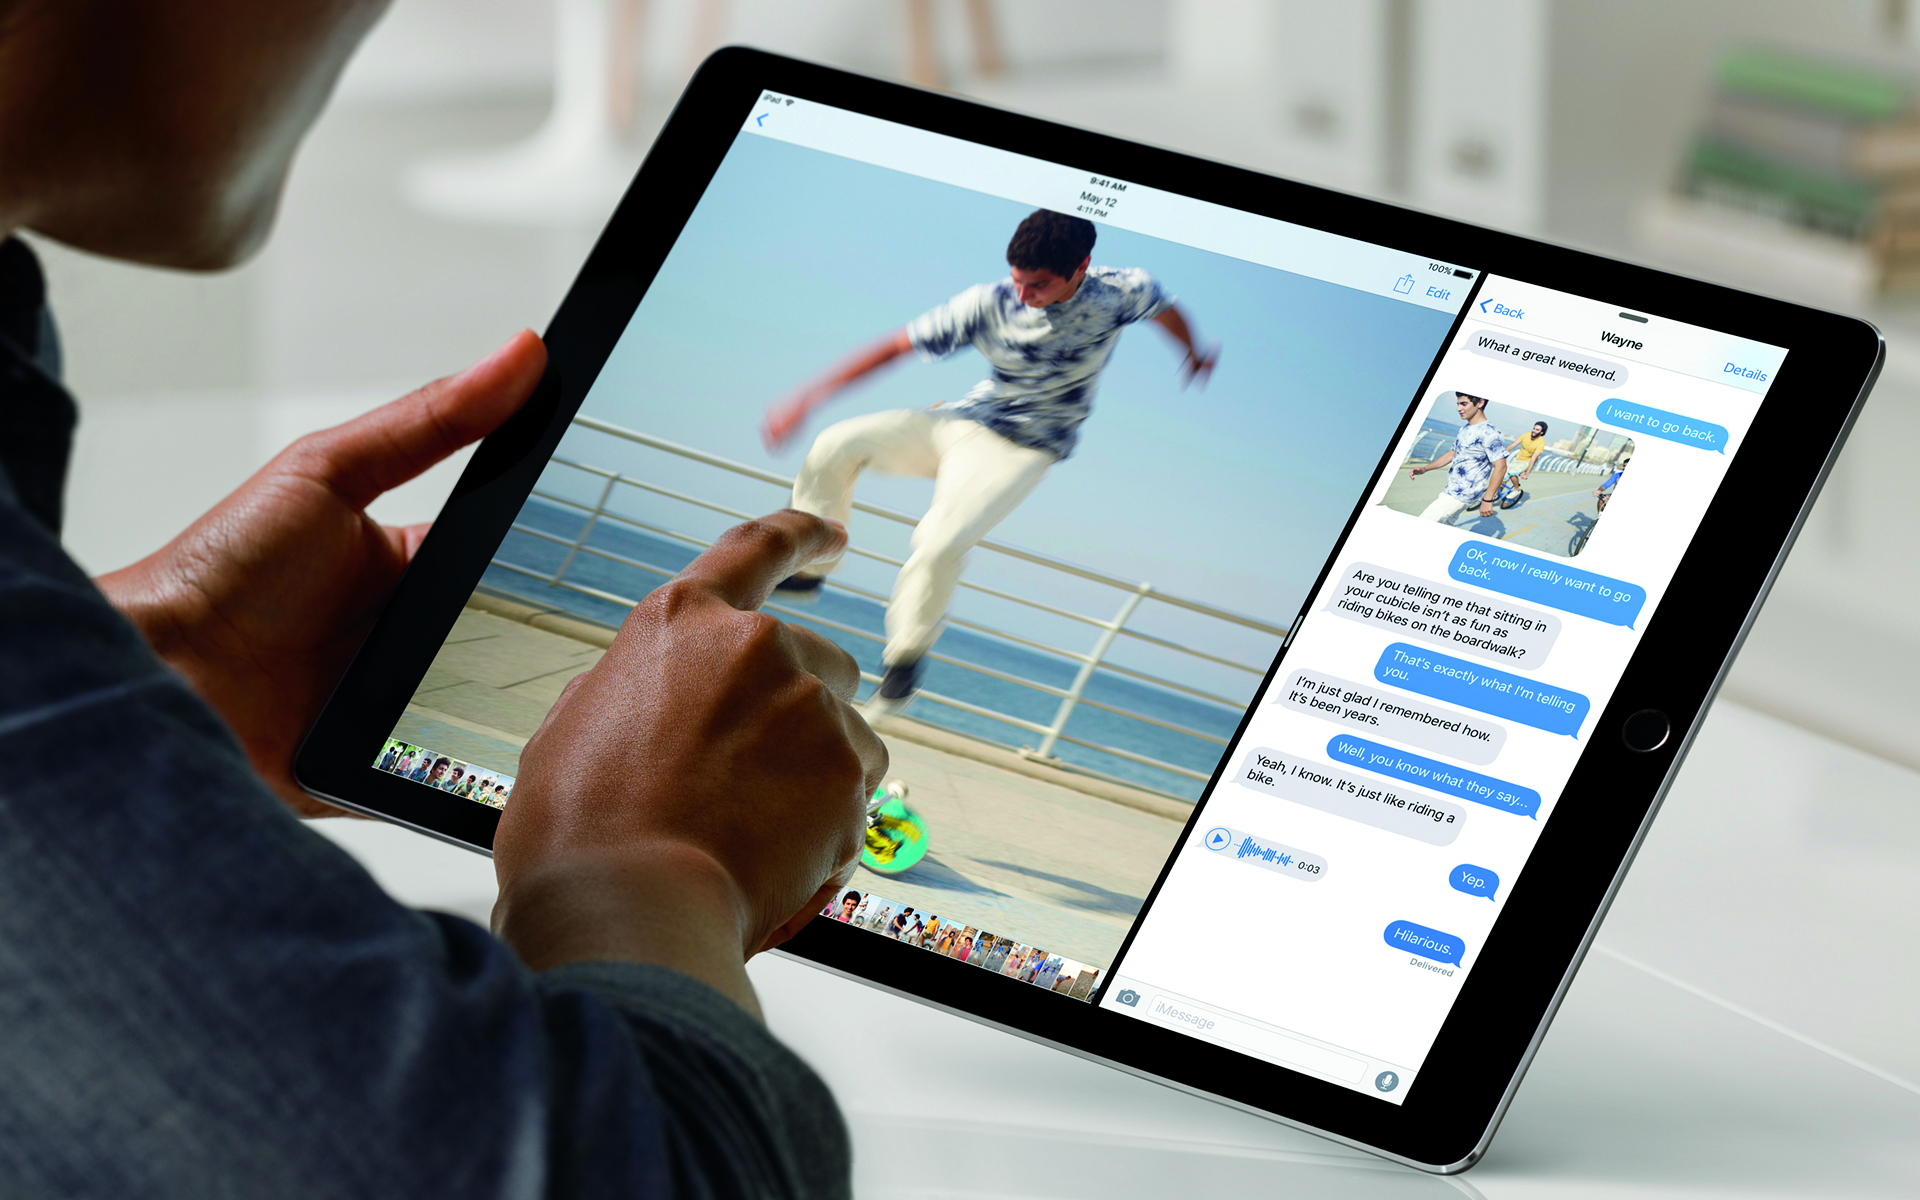 The iPad Pro from Apple is going after designers and artists first